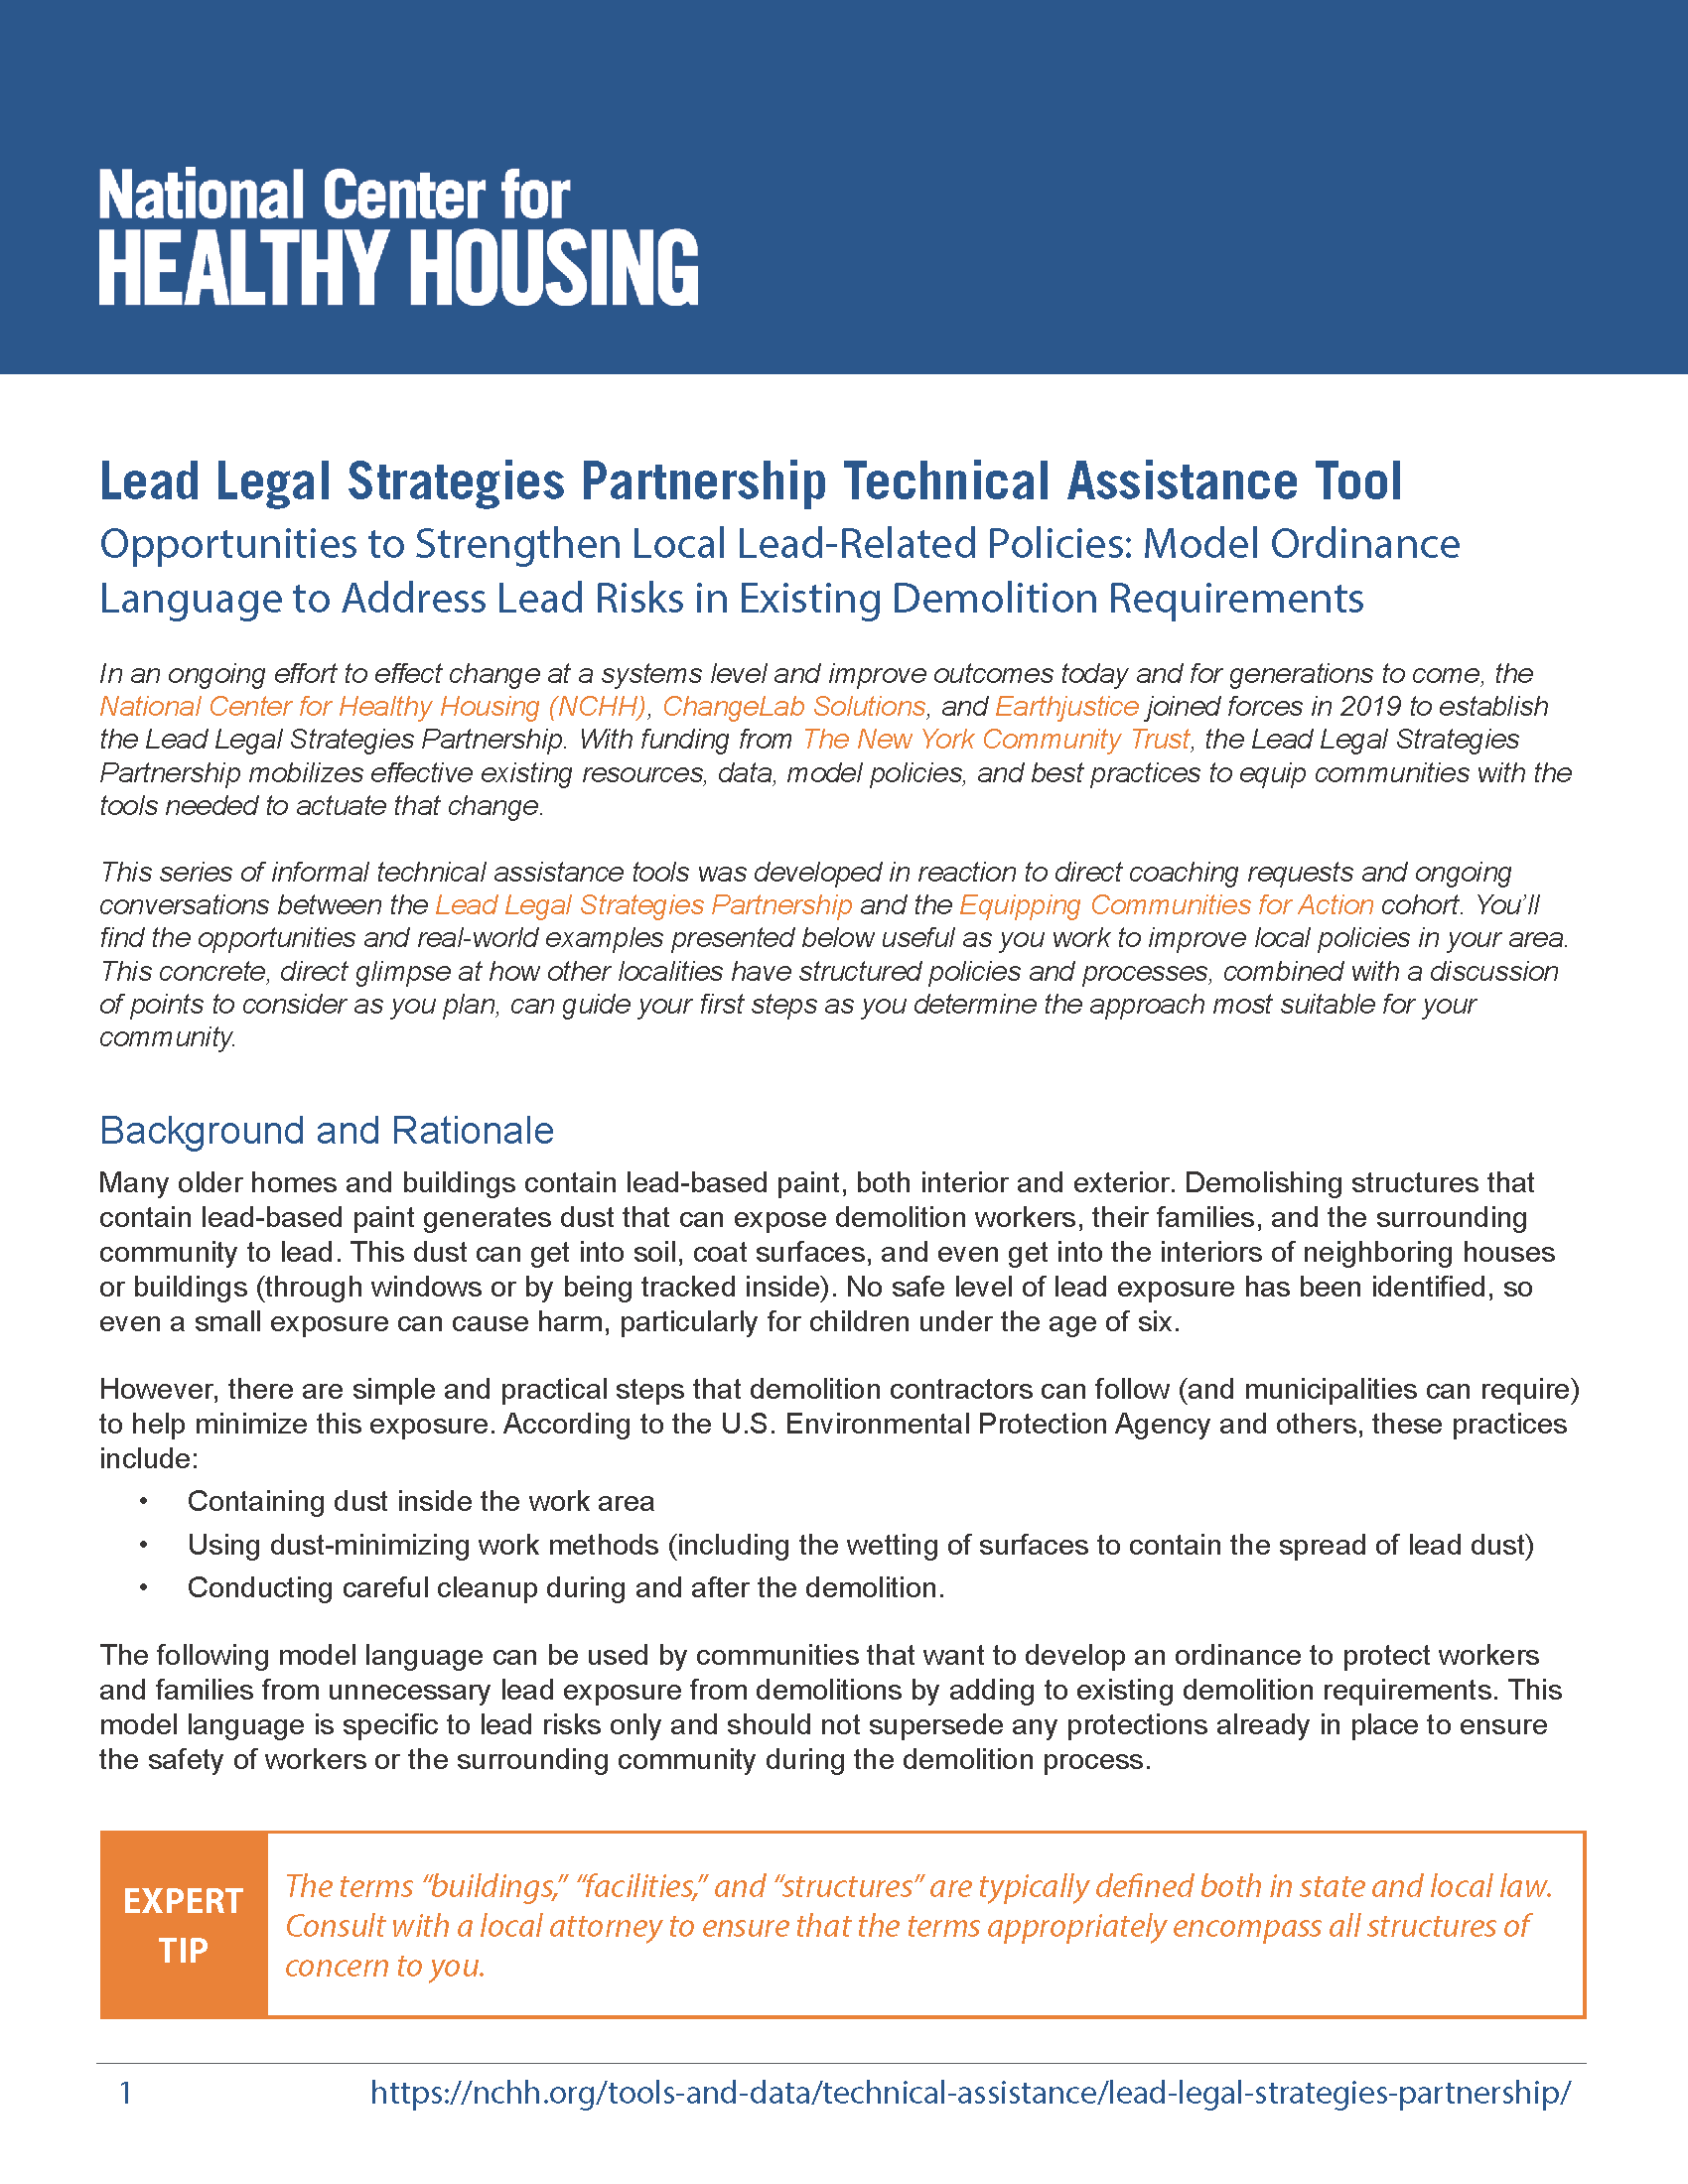 Opportunities to Strengthen Local Lead-Related Policies: Model Ordinance Language to Address Lead Risks in Existing Demolition Requirements